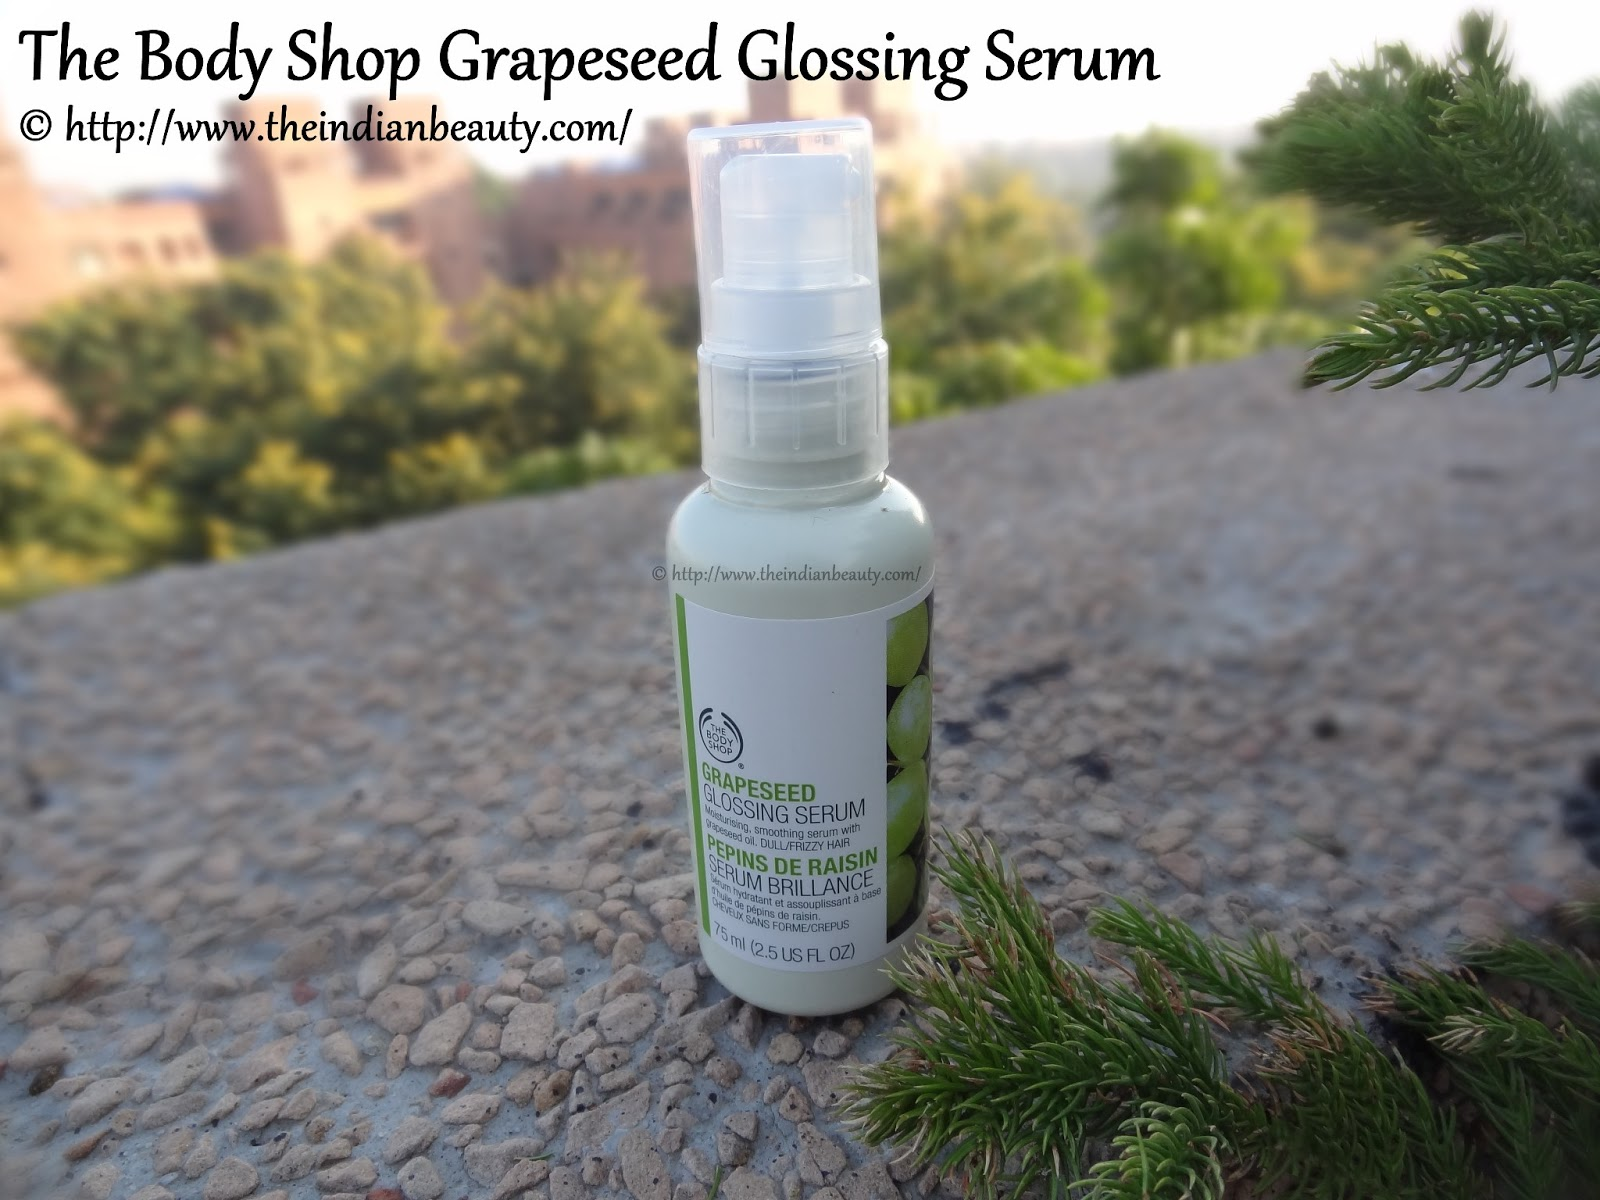 REVIEW: The Body Shop Grapeseed Glossing Serum